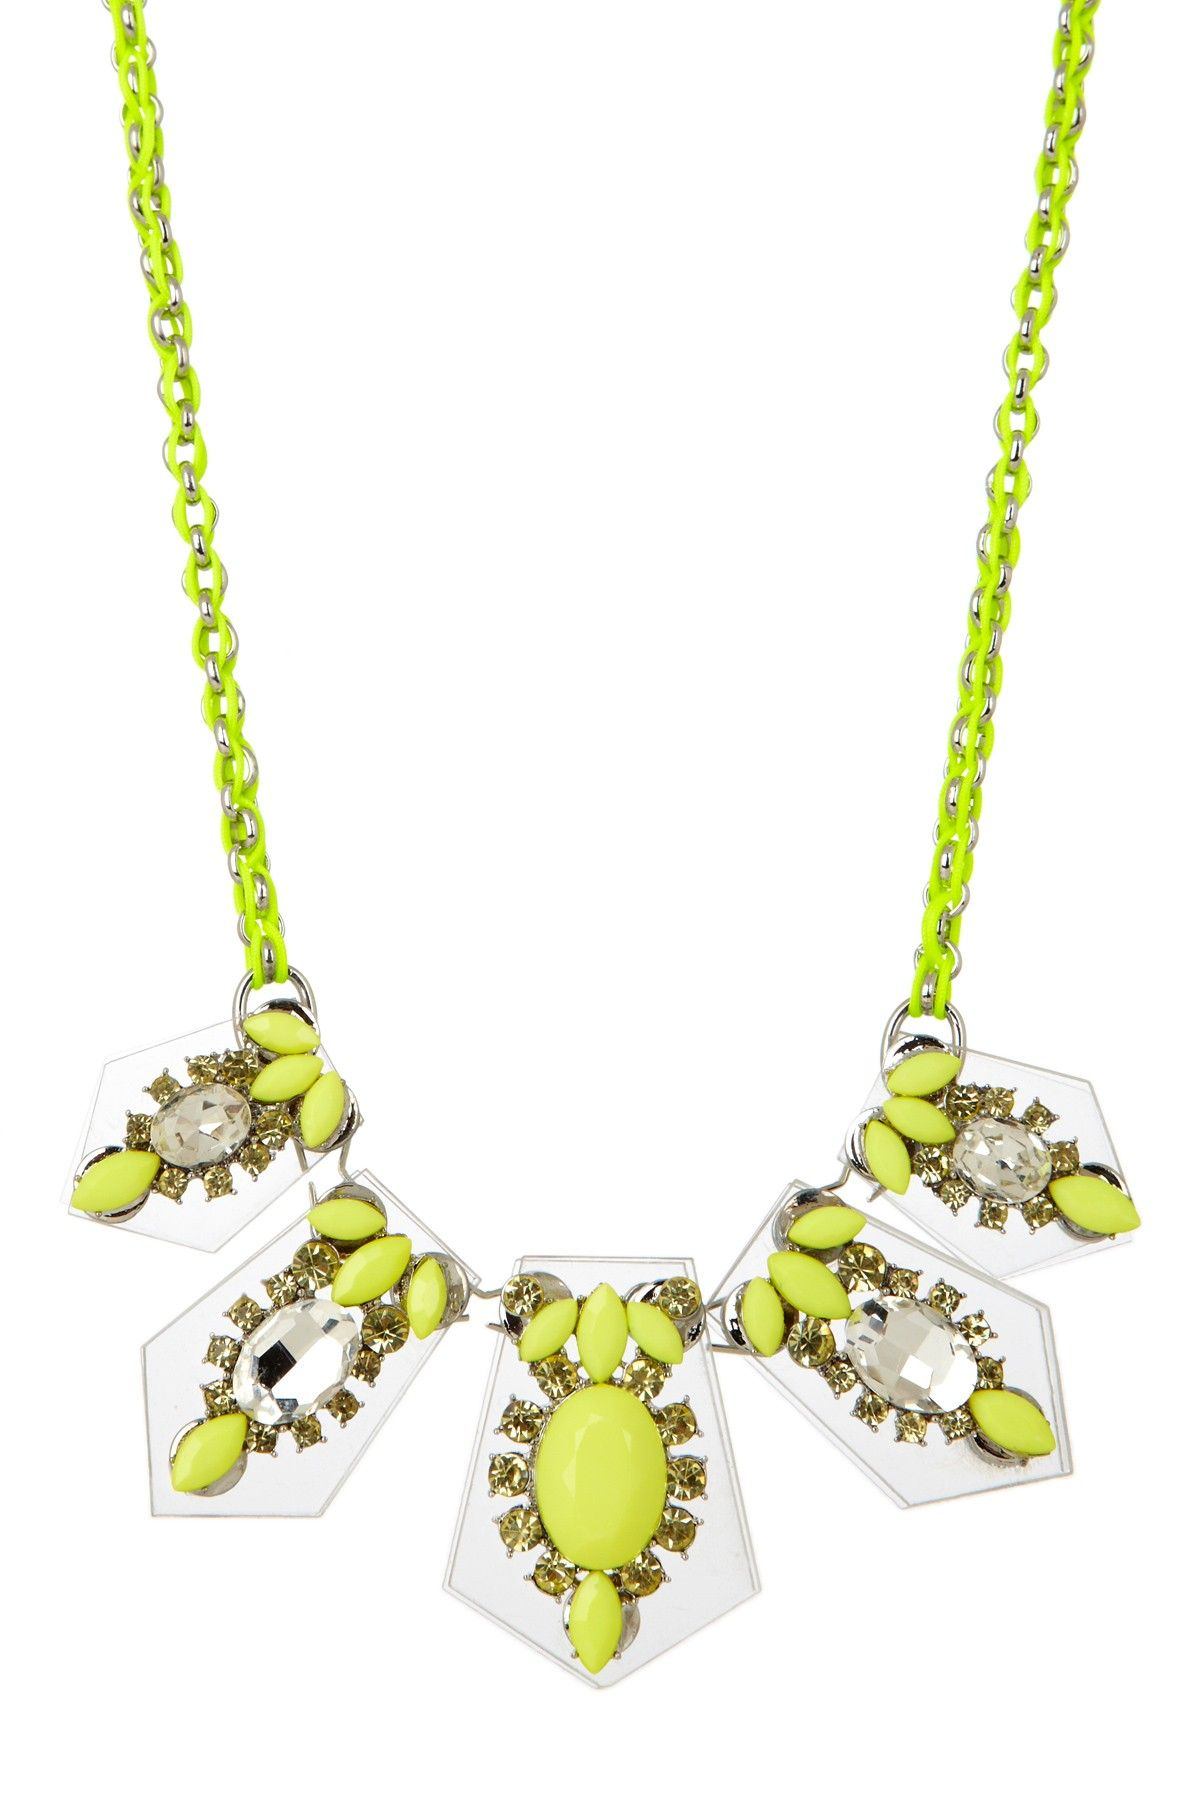 Luxe lucite neon yellow pendant necklace jewelry love pinterest